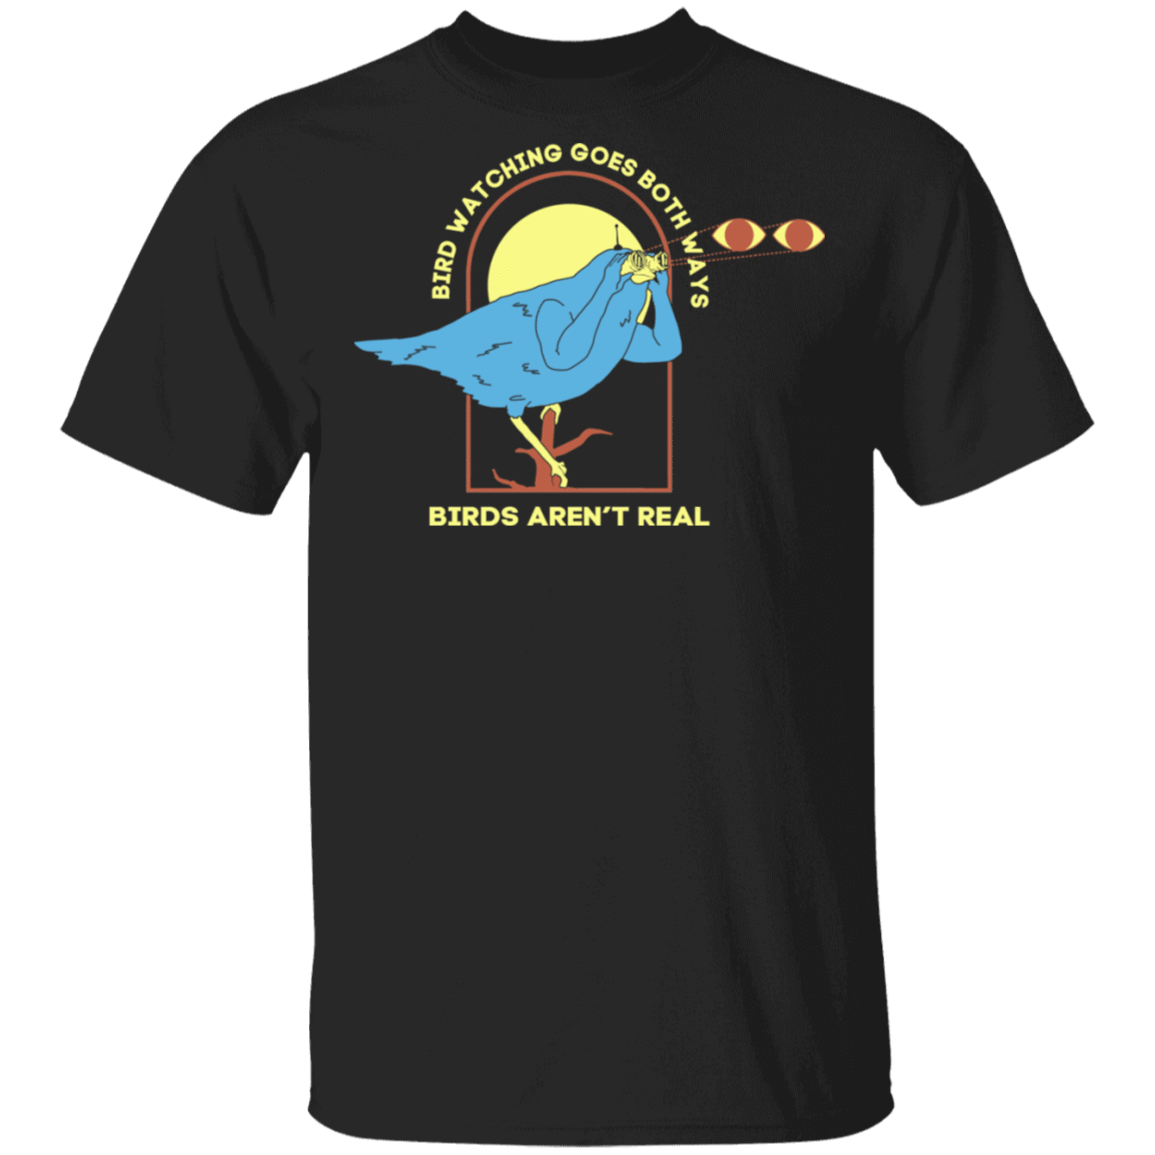 Bird Watching Goes Both Ways Bird Aren't Real T-Shirts, Hoodies 1049-9953-85772297-48144 - Tee Ript